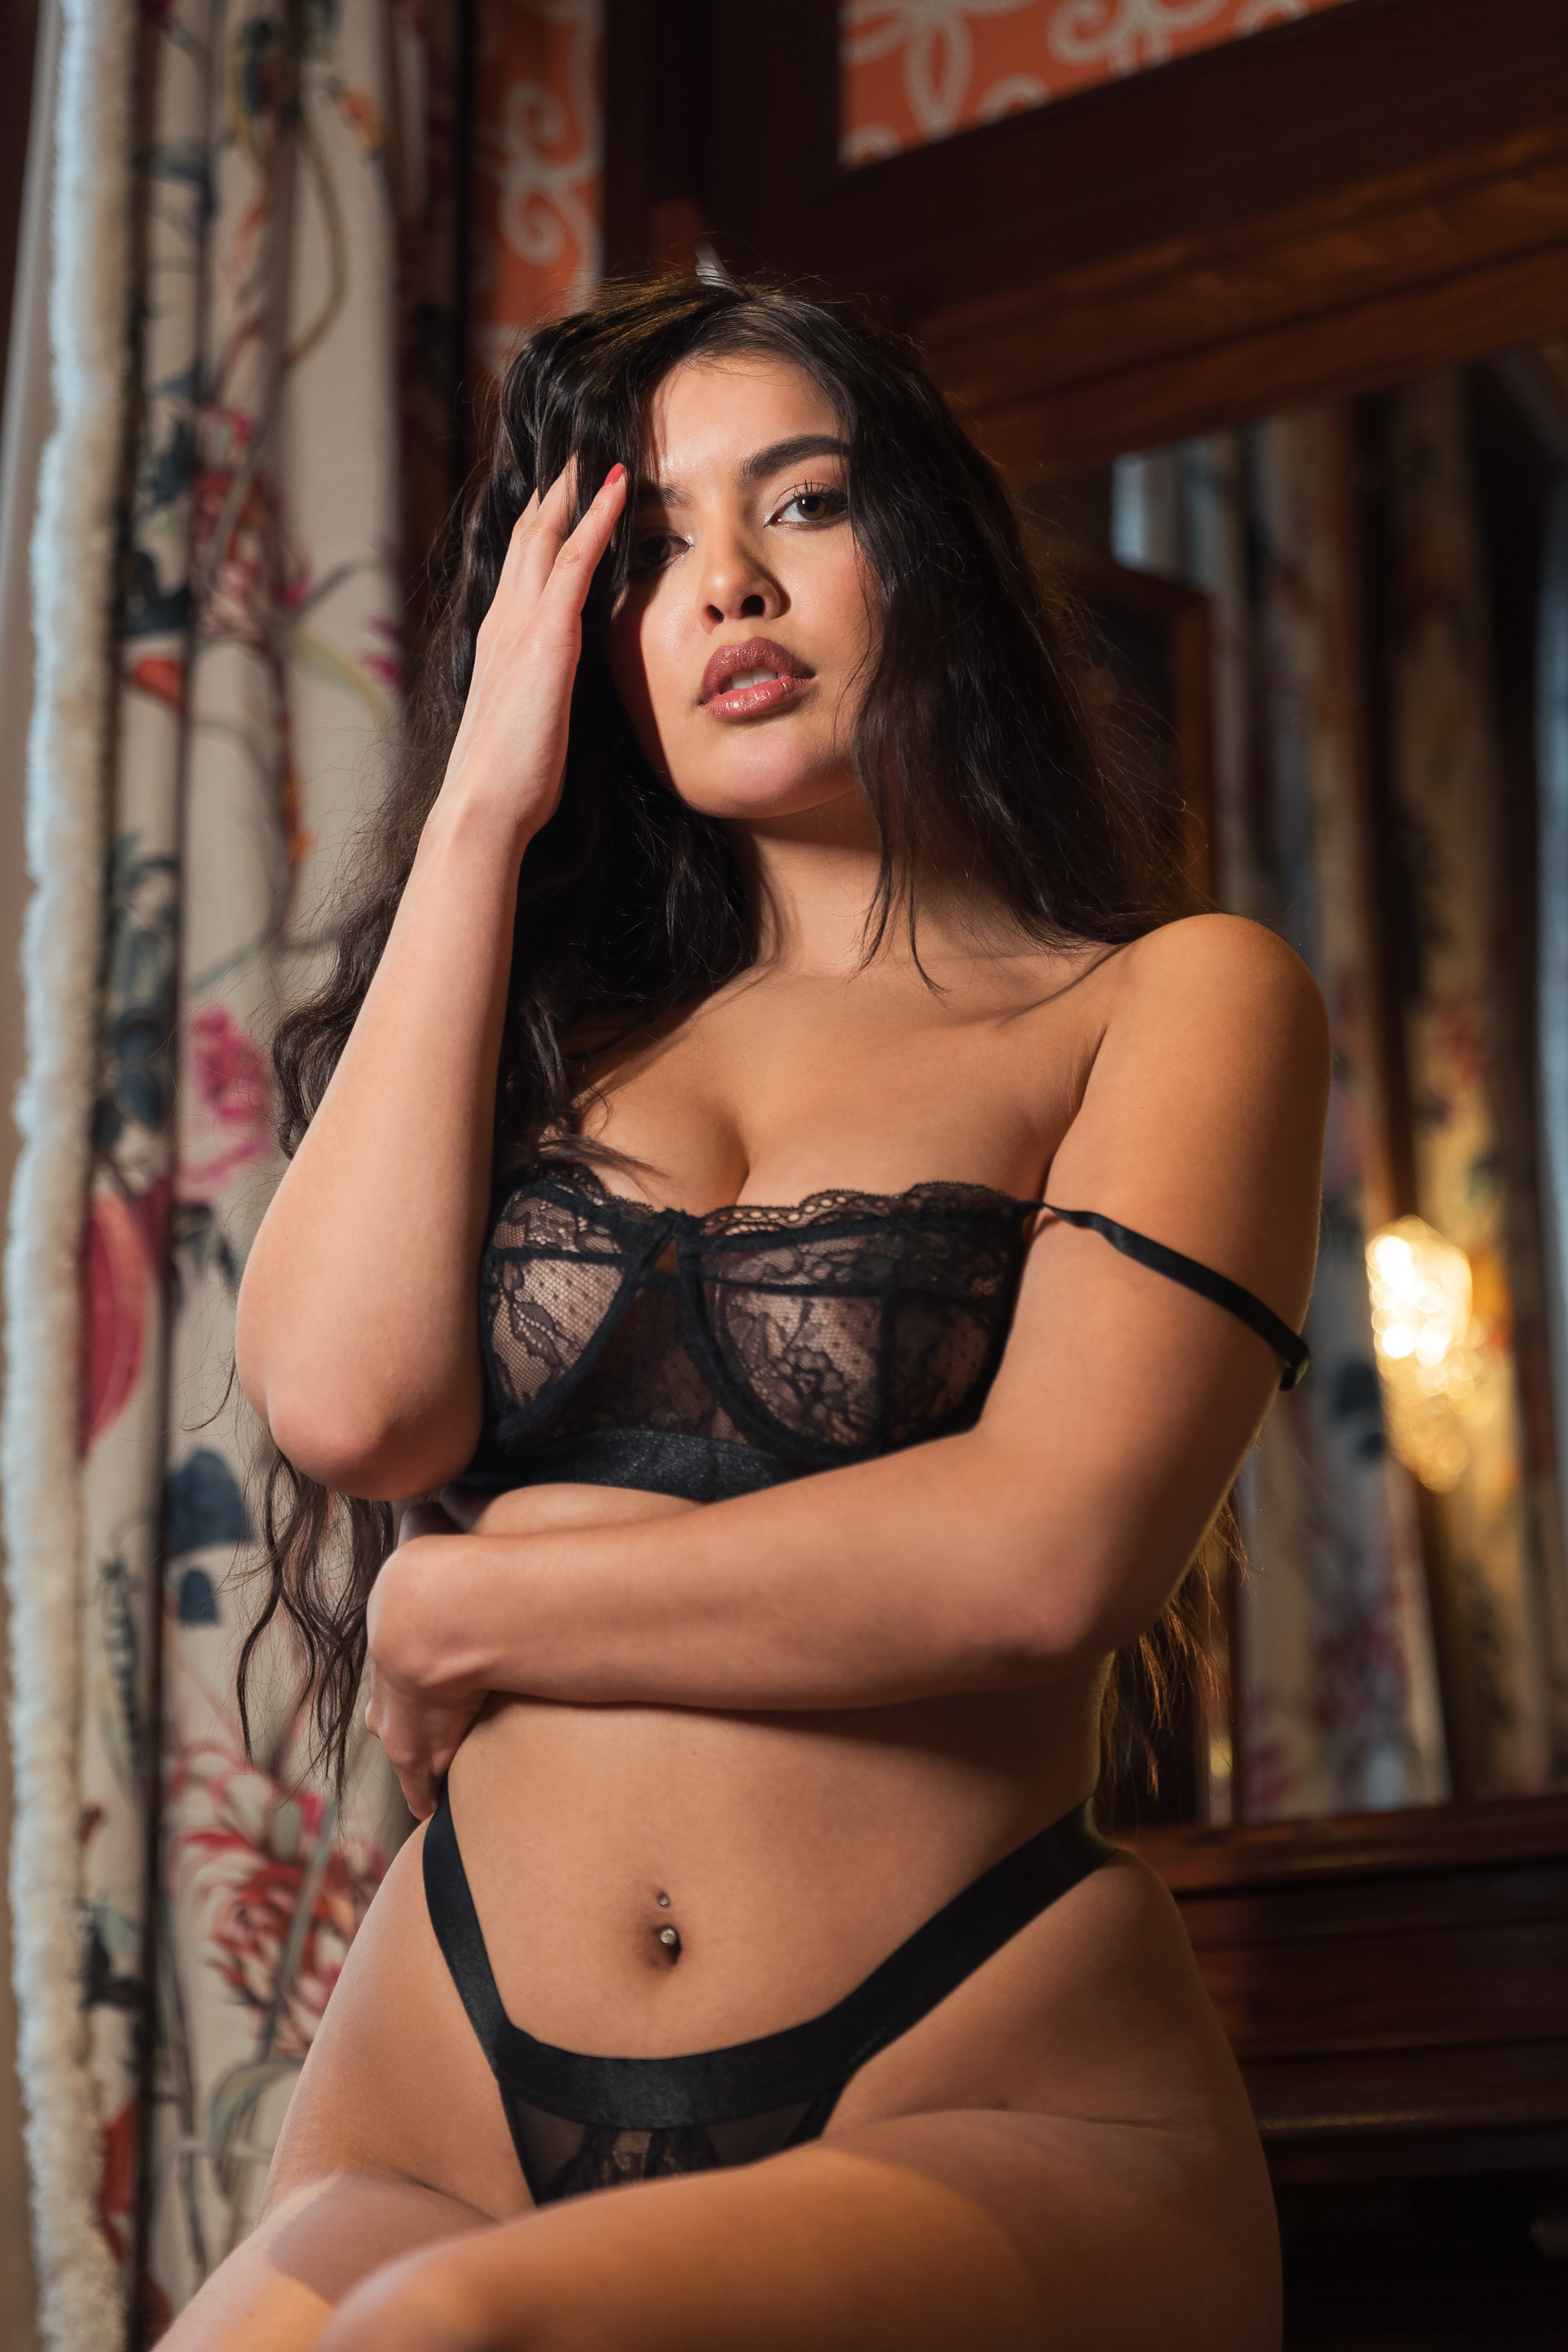 20210209 - MISBEHAVE - Shelly 010.jpg